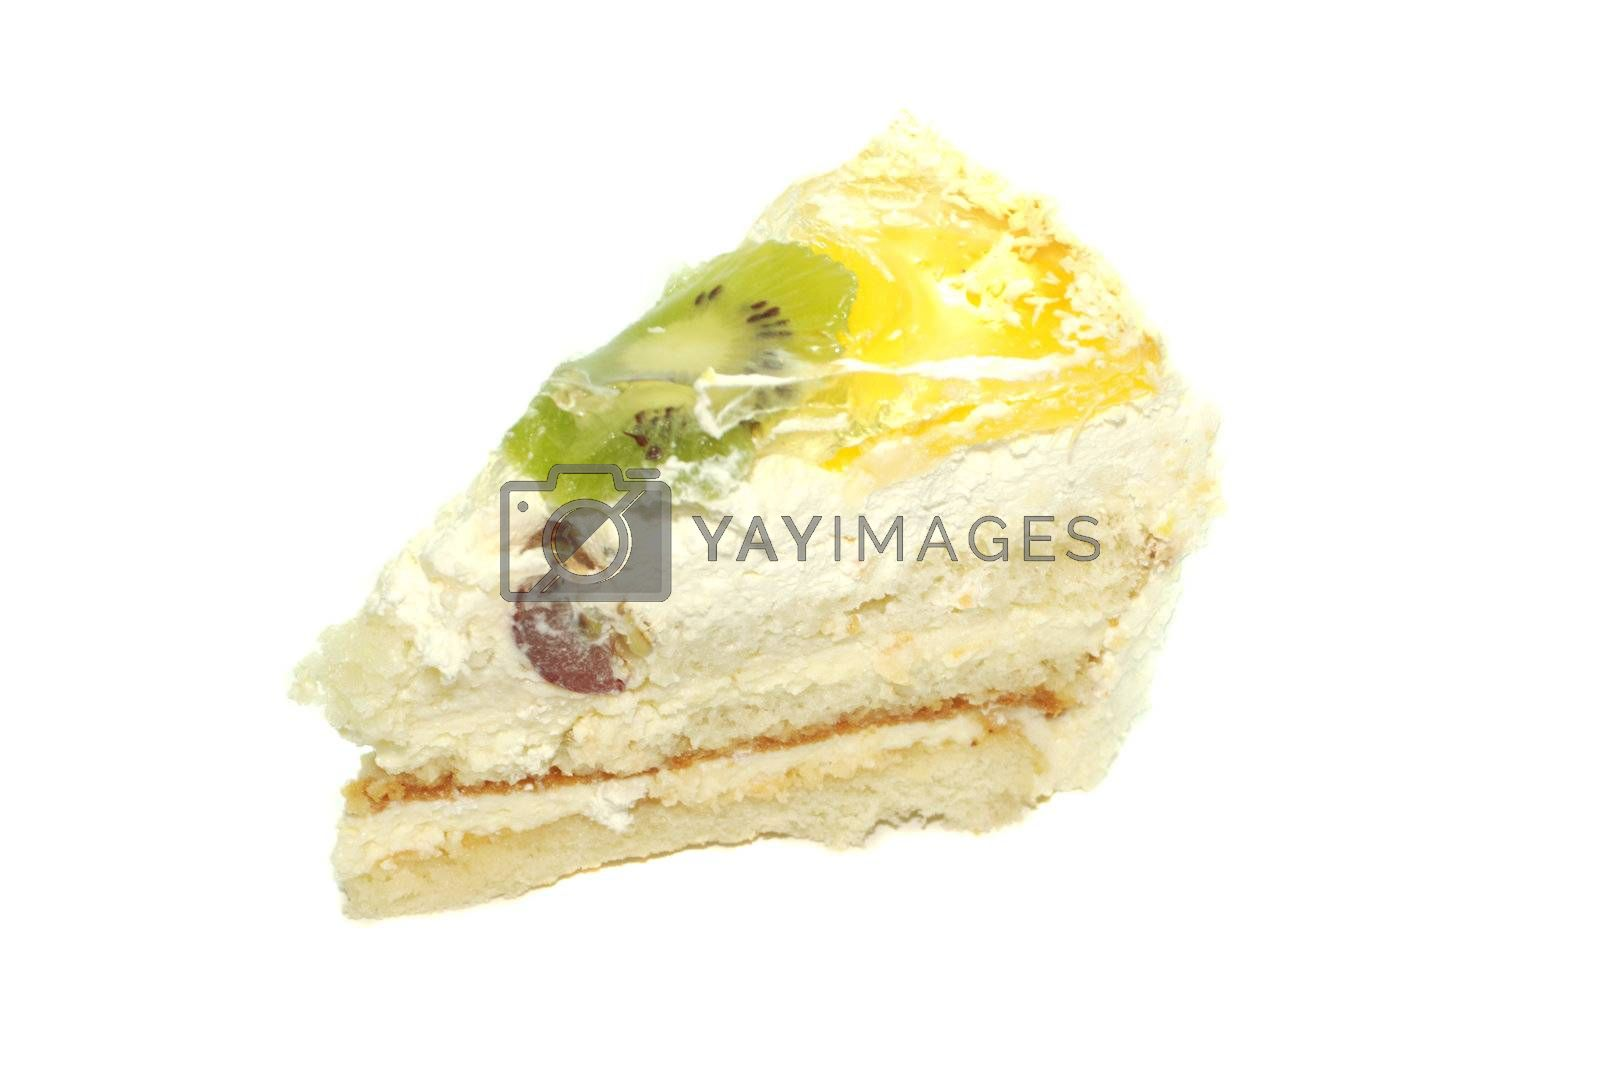 piese of fruit cake with kiwi, orange, grapes, isolated on white